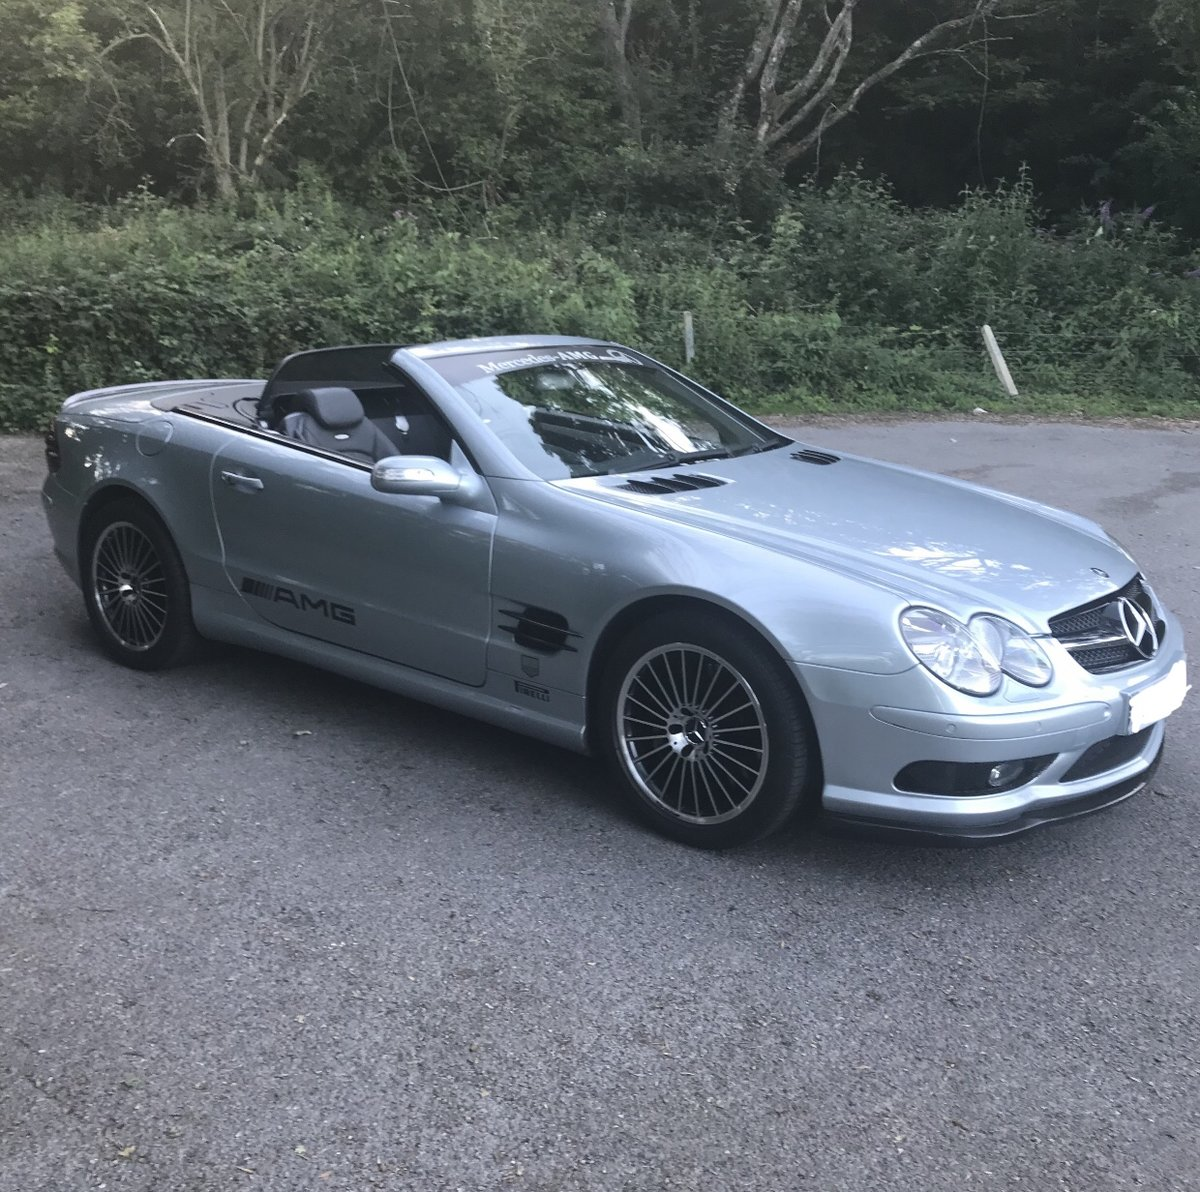 2004 550 bhp Mercedes Supercharged V8 SL55 AMG For Sale (picture 5 of 6)